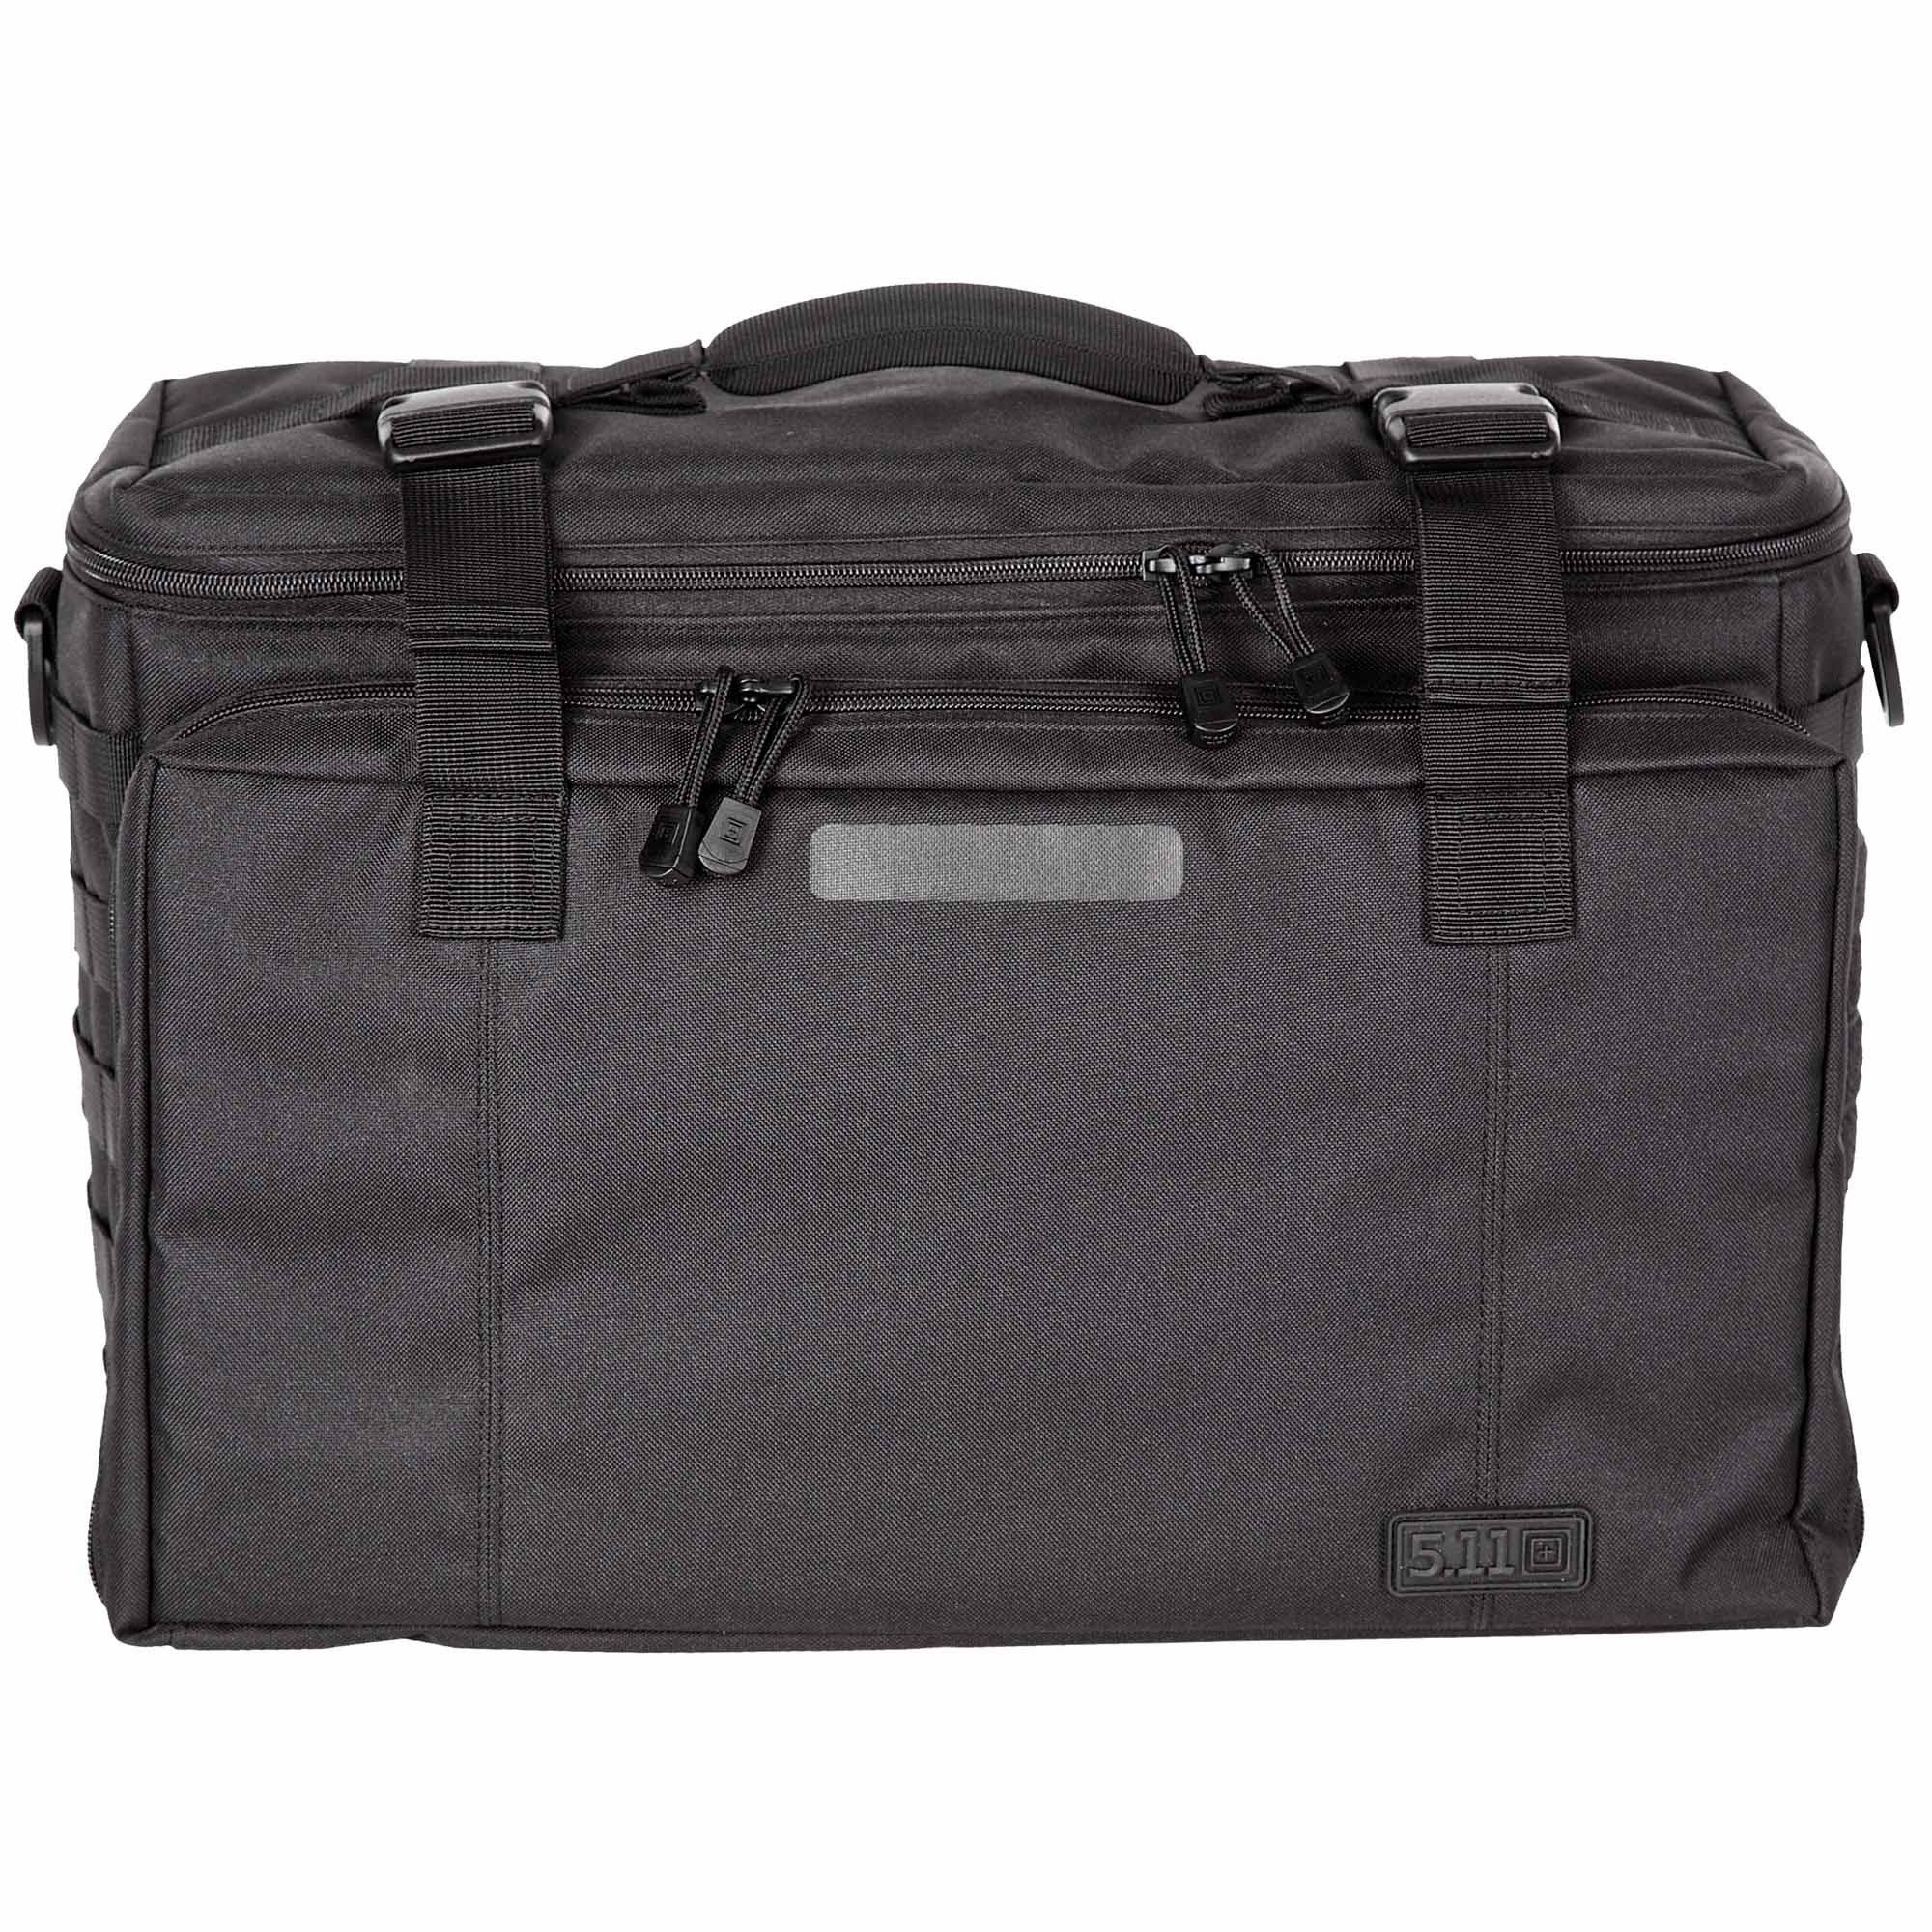 Purpose BuiltDesigned to fit in your passenger seat the 5 11 Wingman Patrol Bag functions as